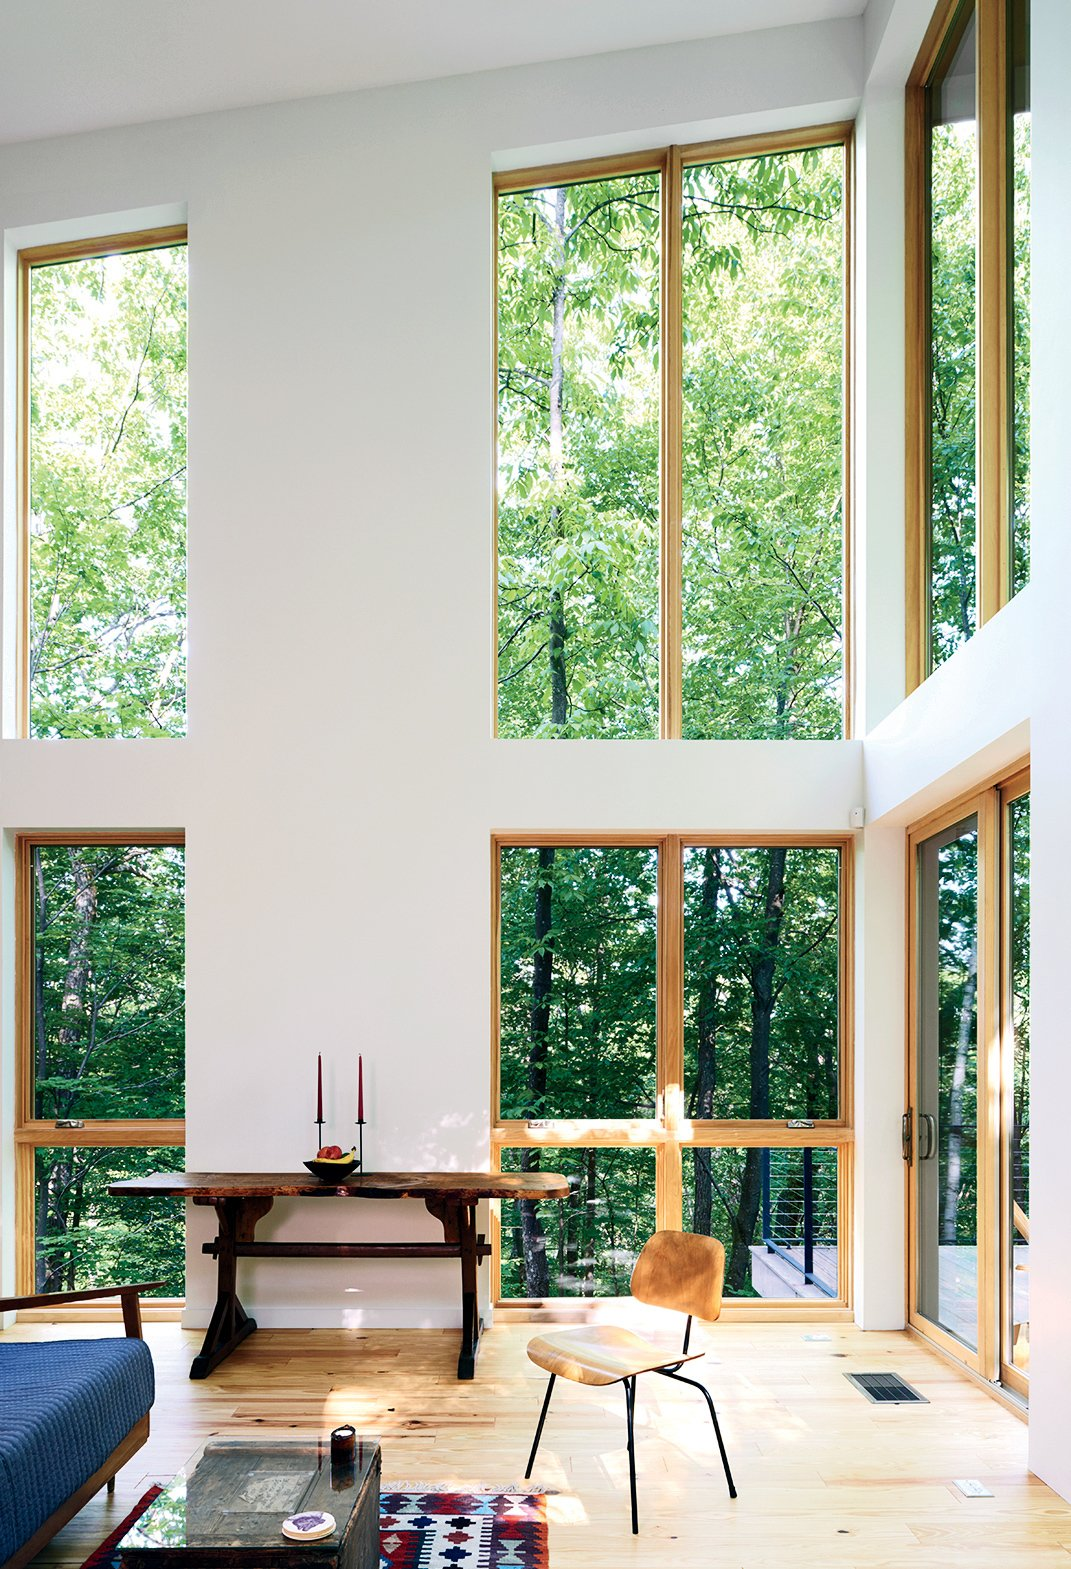 The residents splurged on double-height Marvin Integrity windows. Tagged: Living Room, Chair, and Light Hardwood Floor.  Photo 2 of 4 in A Little Cabin Cantilevered Over a Rocky Ledge in the Mountains